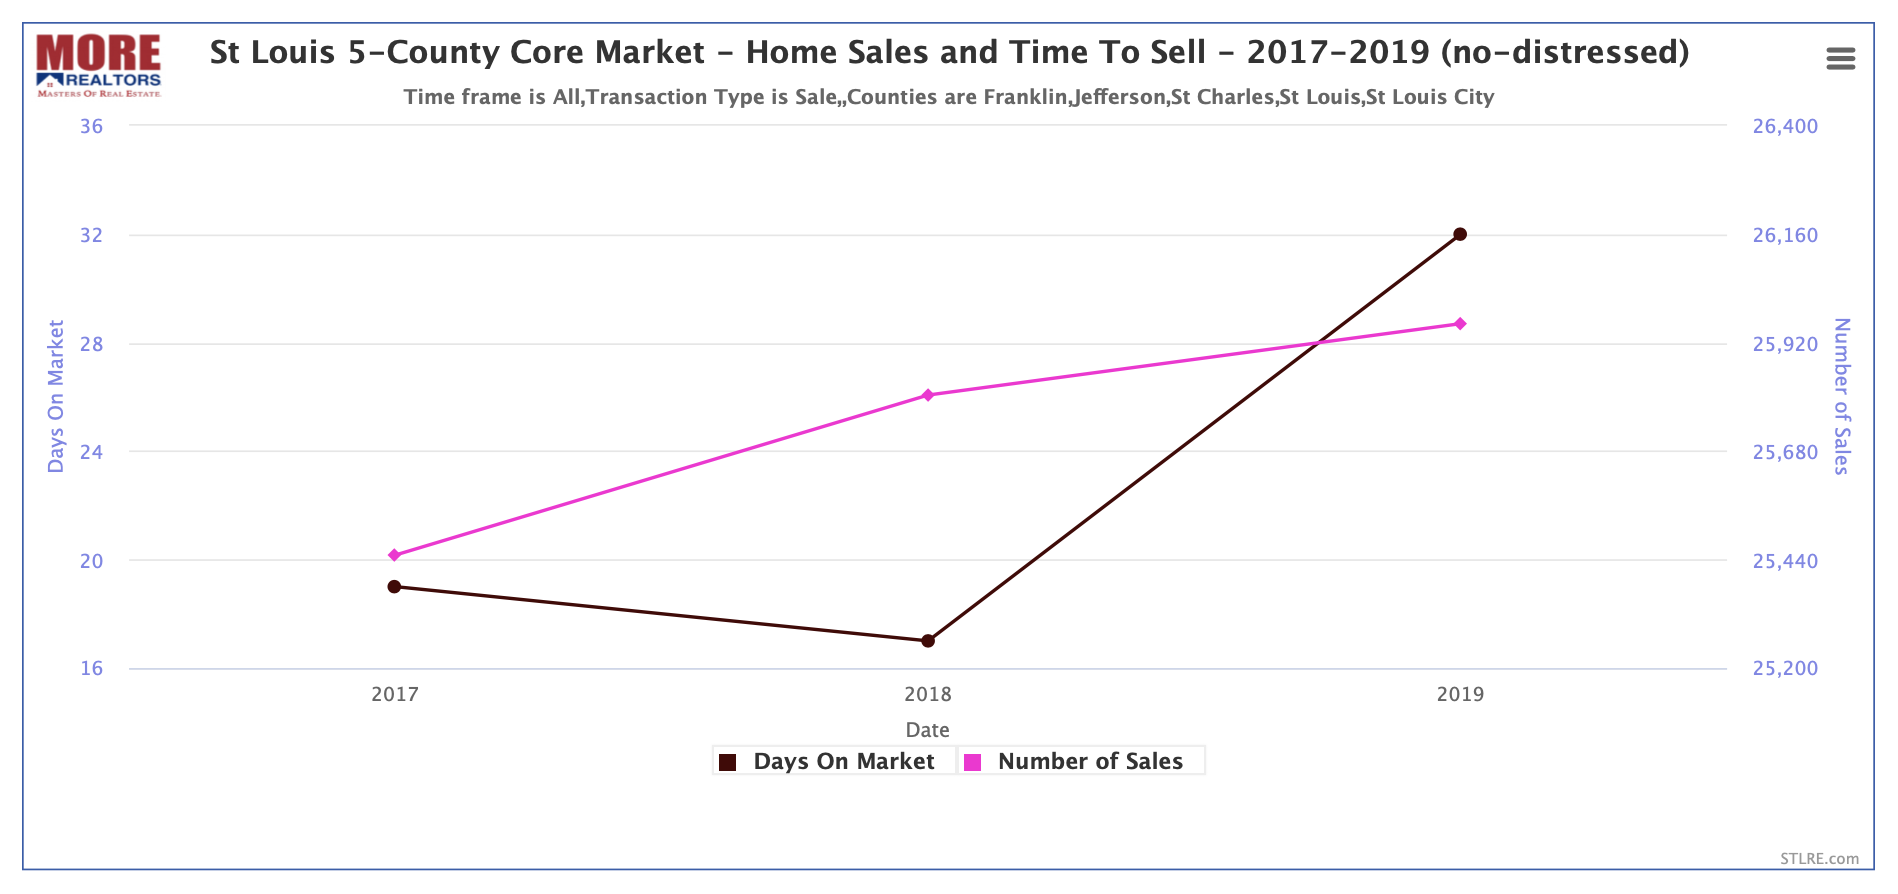 St Louis 5-County Core Market -Home Sales and Time To Sell - 2017 - 2019